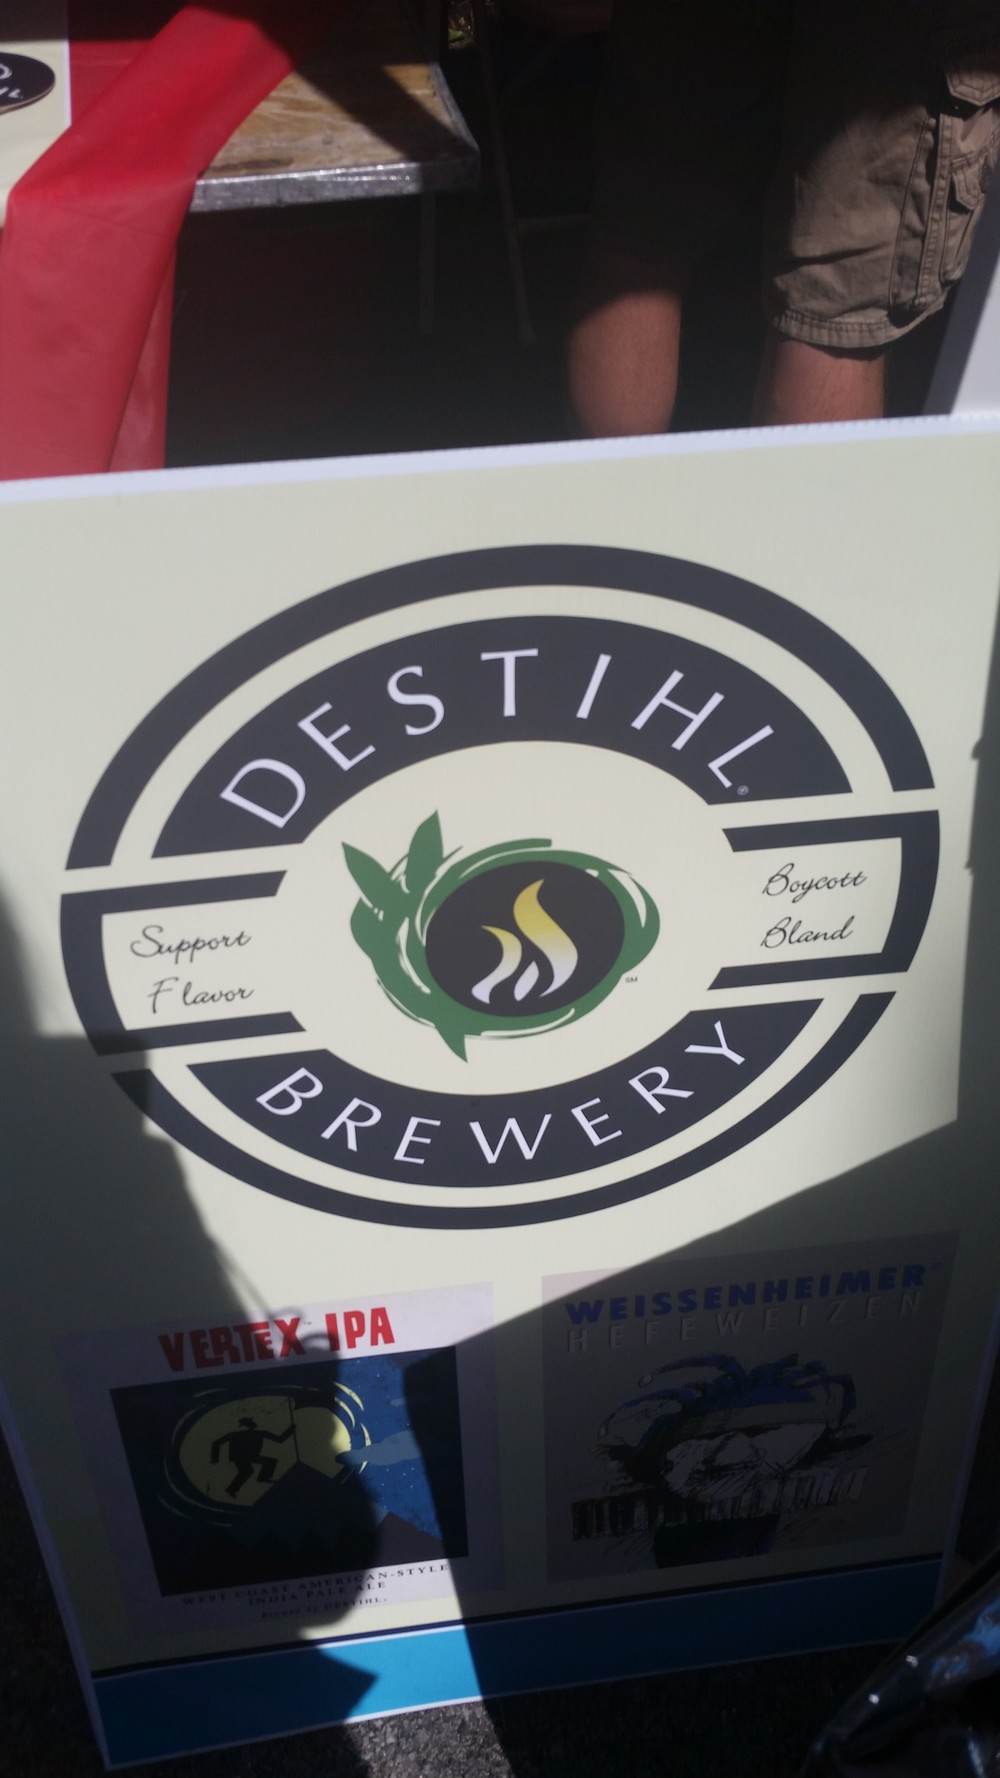 DESTIHL Brewery, Brew-Ha-Ha 2016